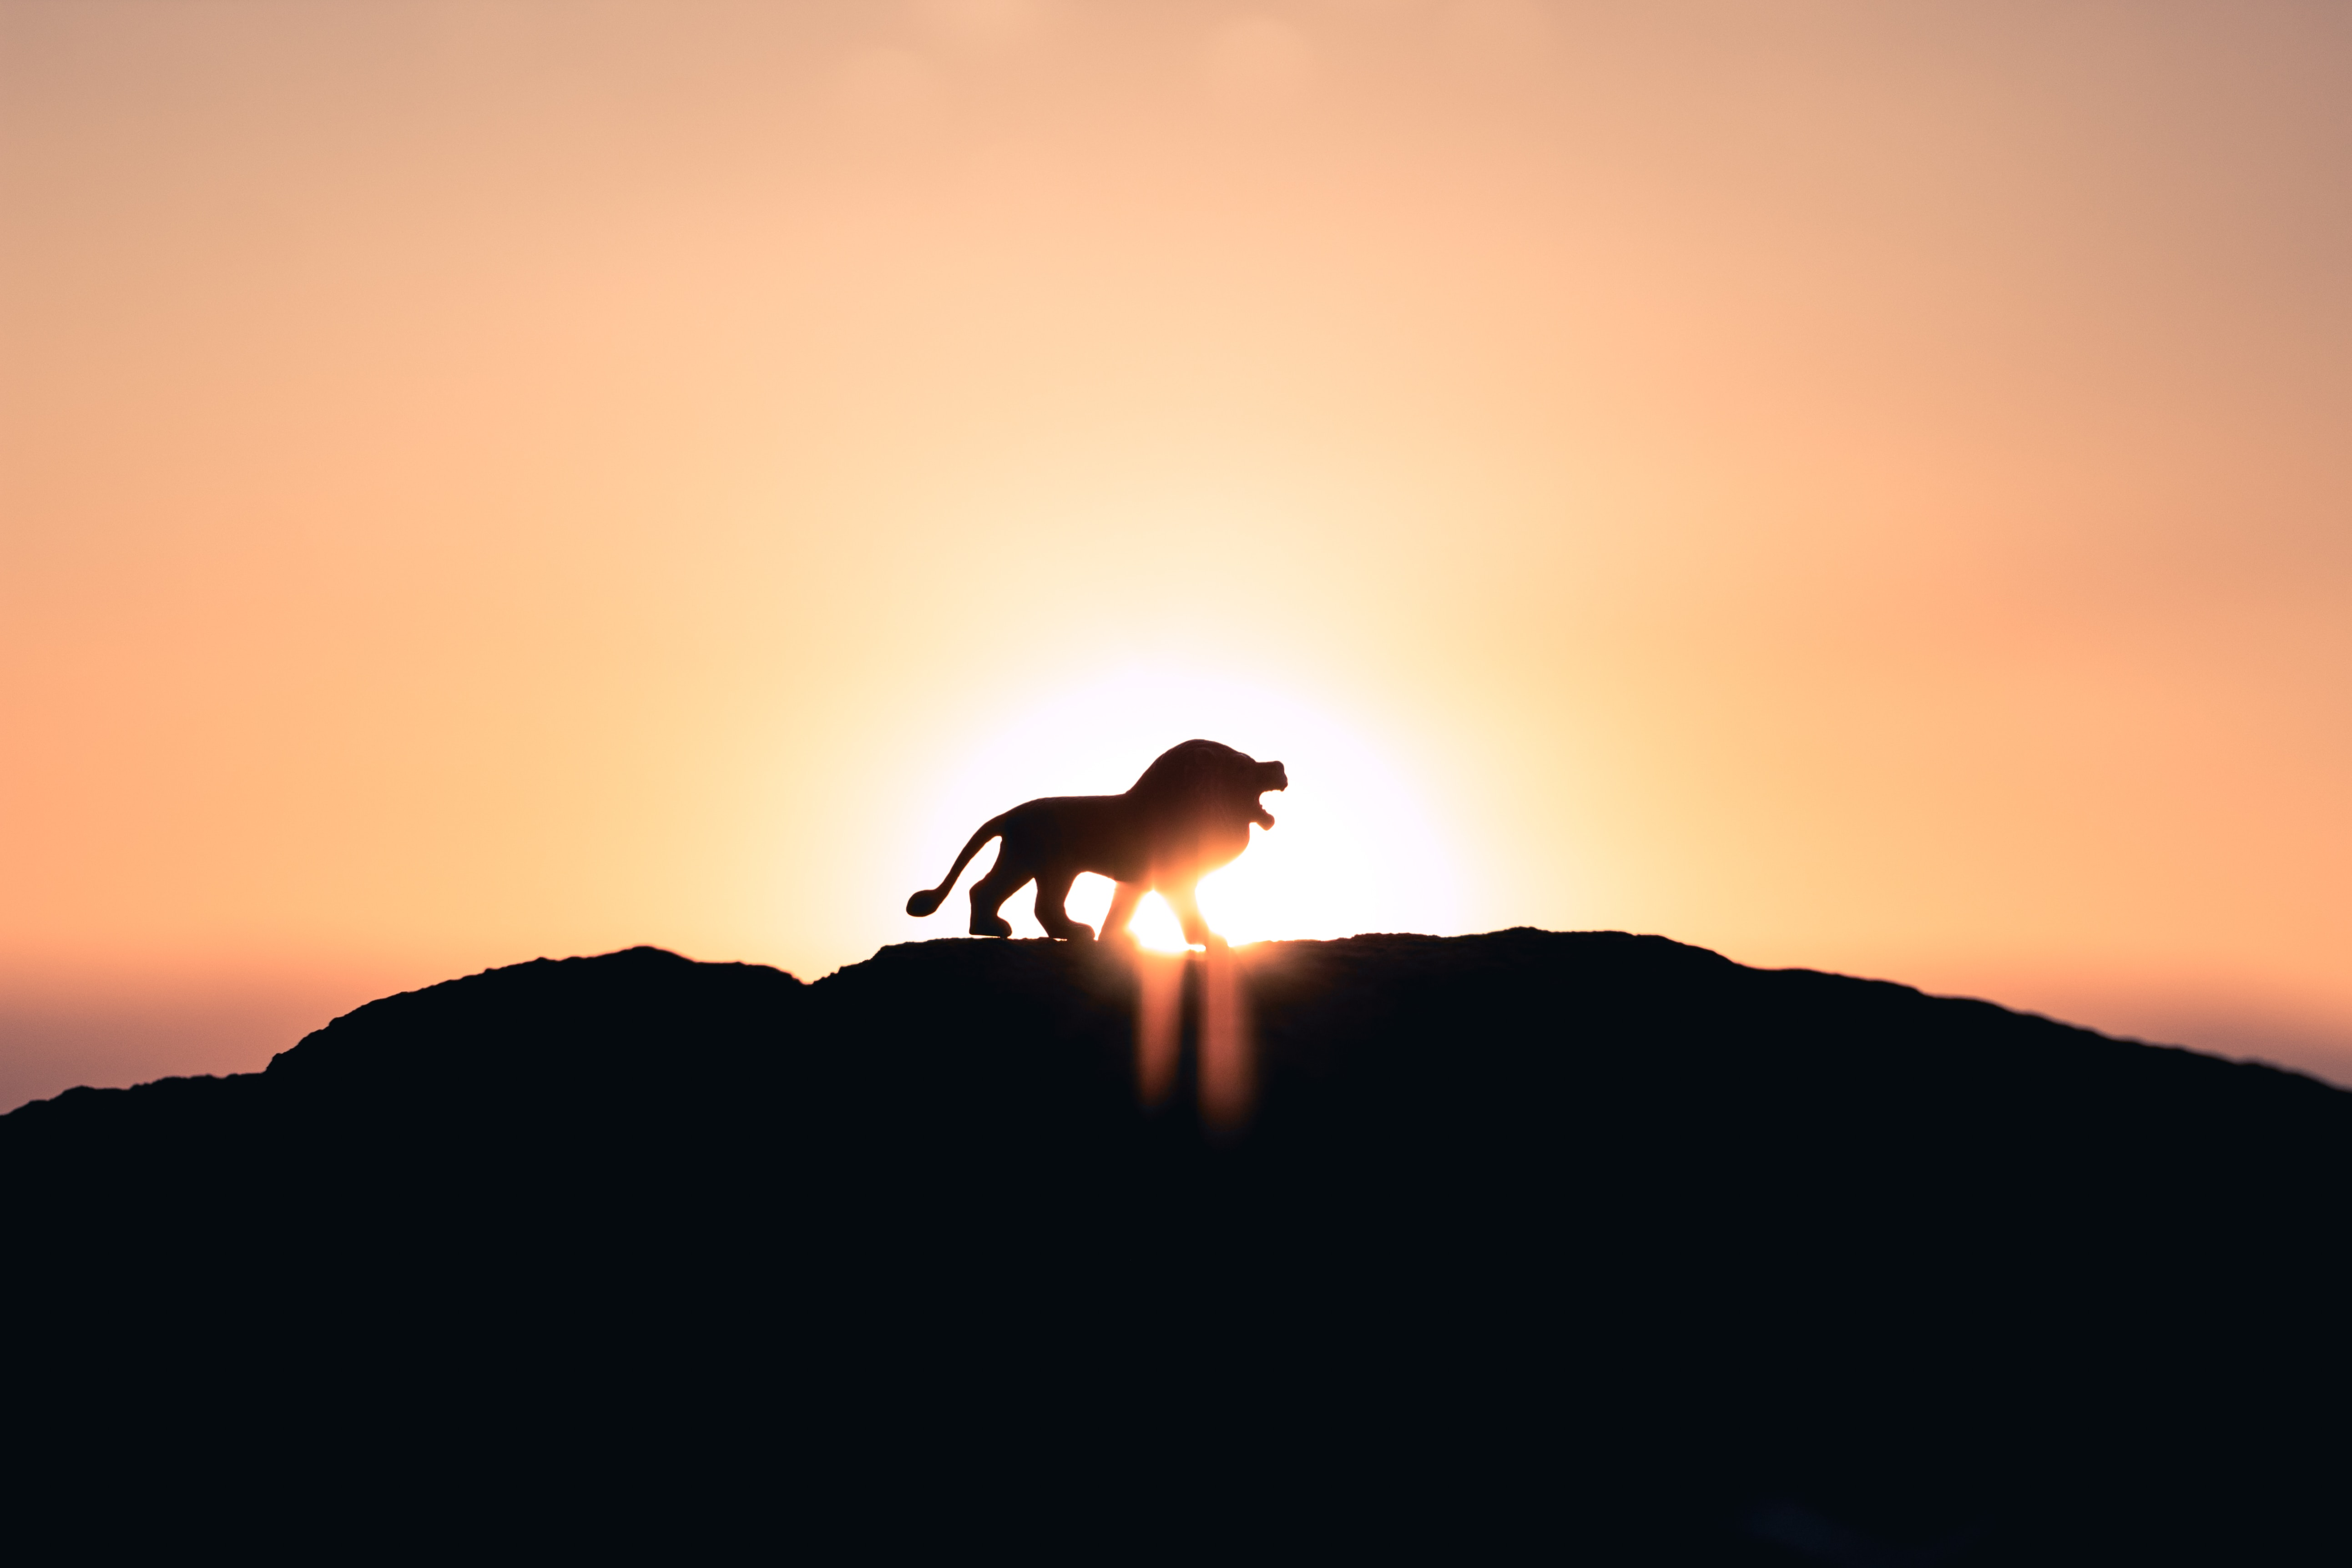 Wallpaper 4k Lion Top Of Mountain Lion Mountain Wallpapers 4k